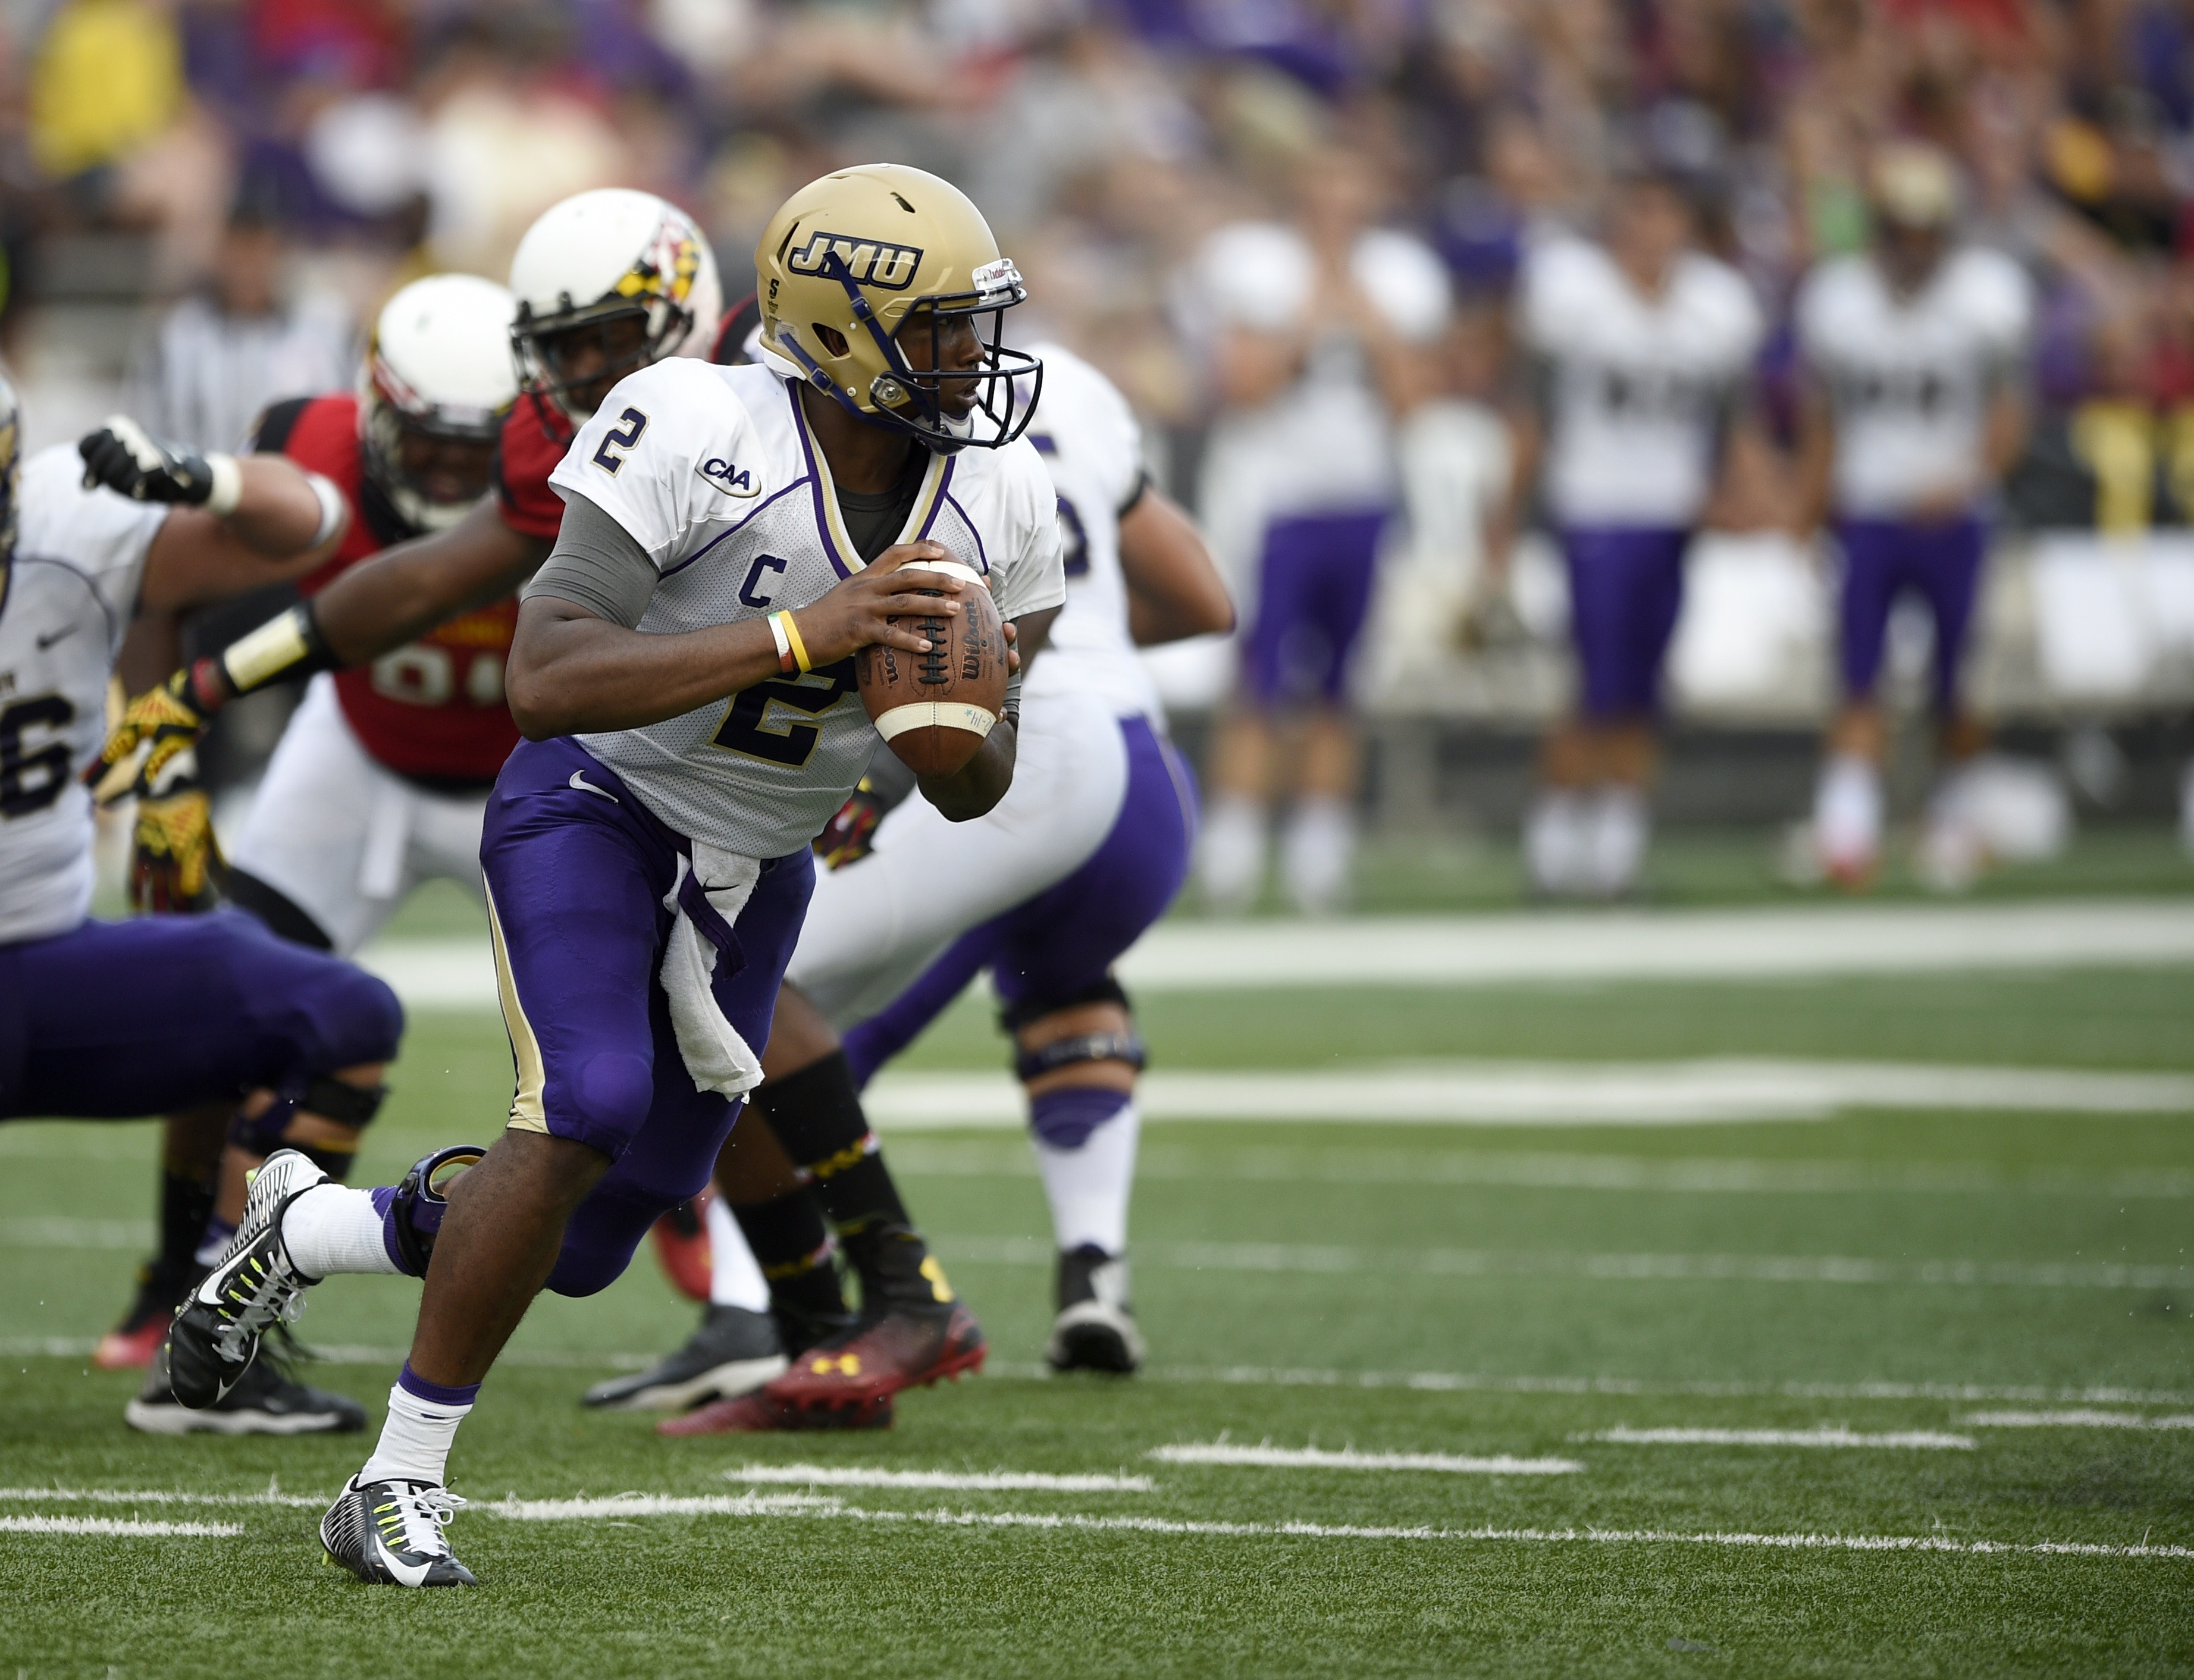 James Madison quarterback Vad Lee (2) looks to pass during the second half of an NCAA football game against Maryland, Saturday, Aug. 30, 2014, in College Park, Md. Maryland won 52-7. (AP Photo/Nick Wass)